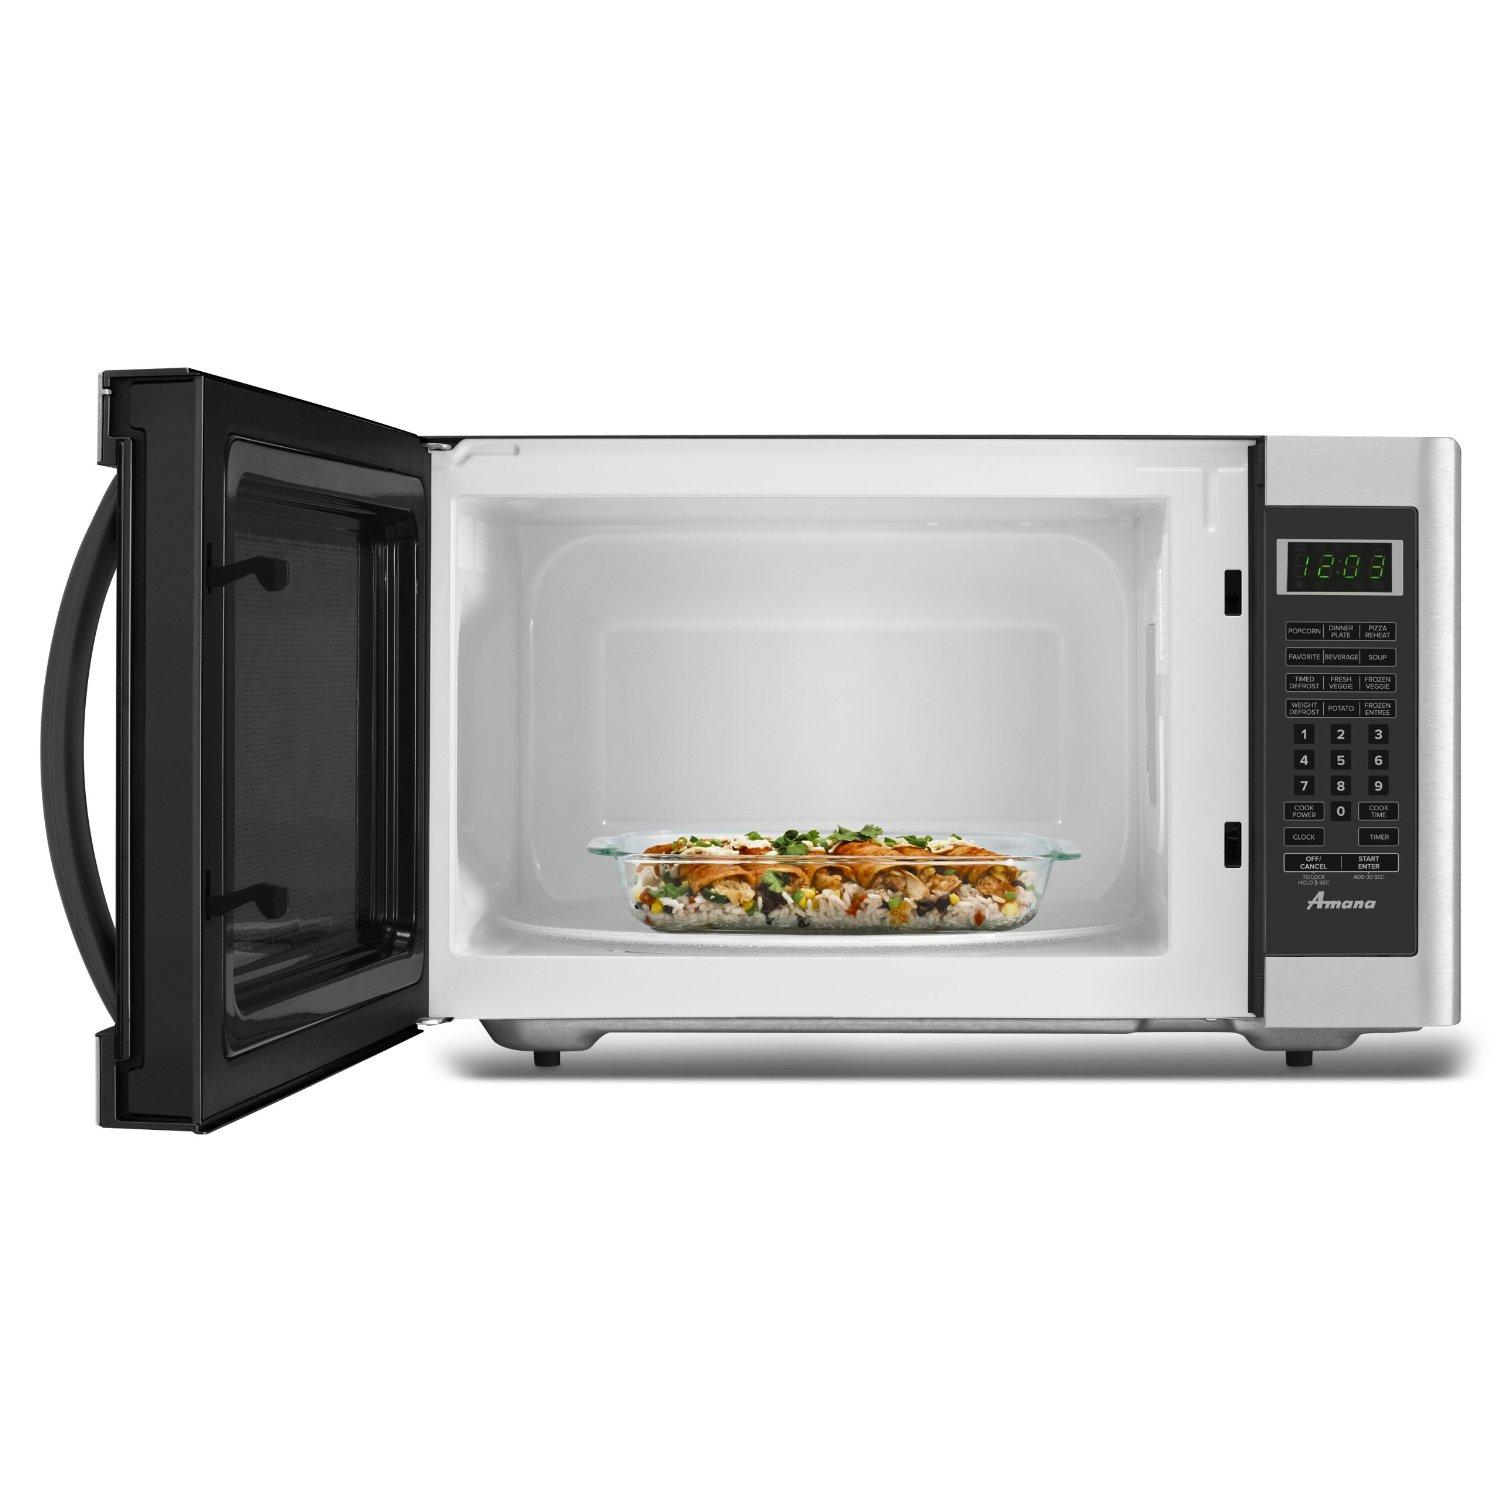 Countertop Microwave With Vent : AMC2166AS Amana amc2166as Countertop Microwaves